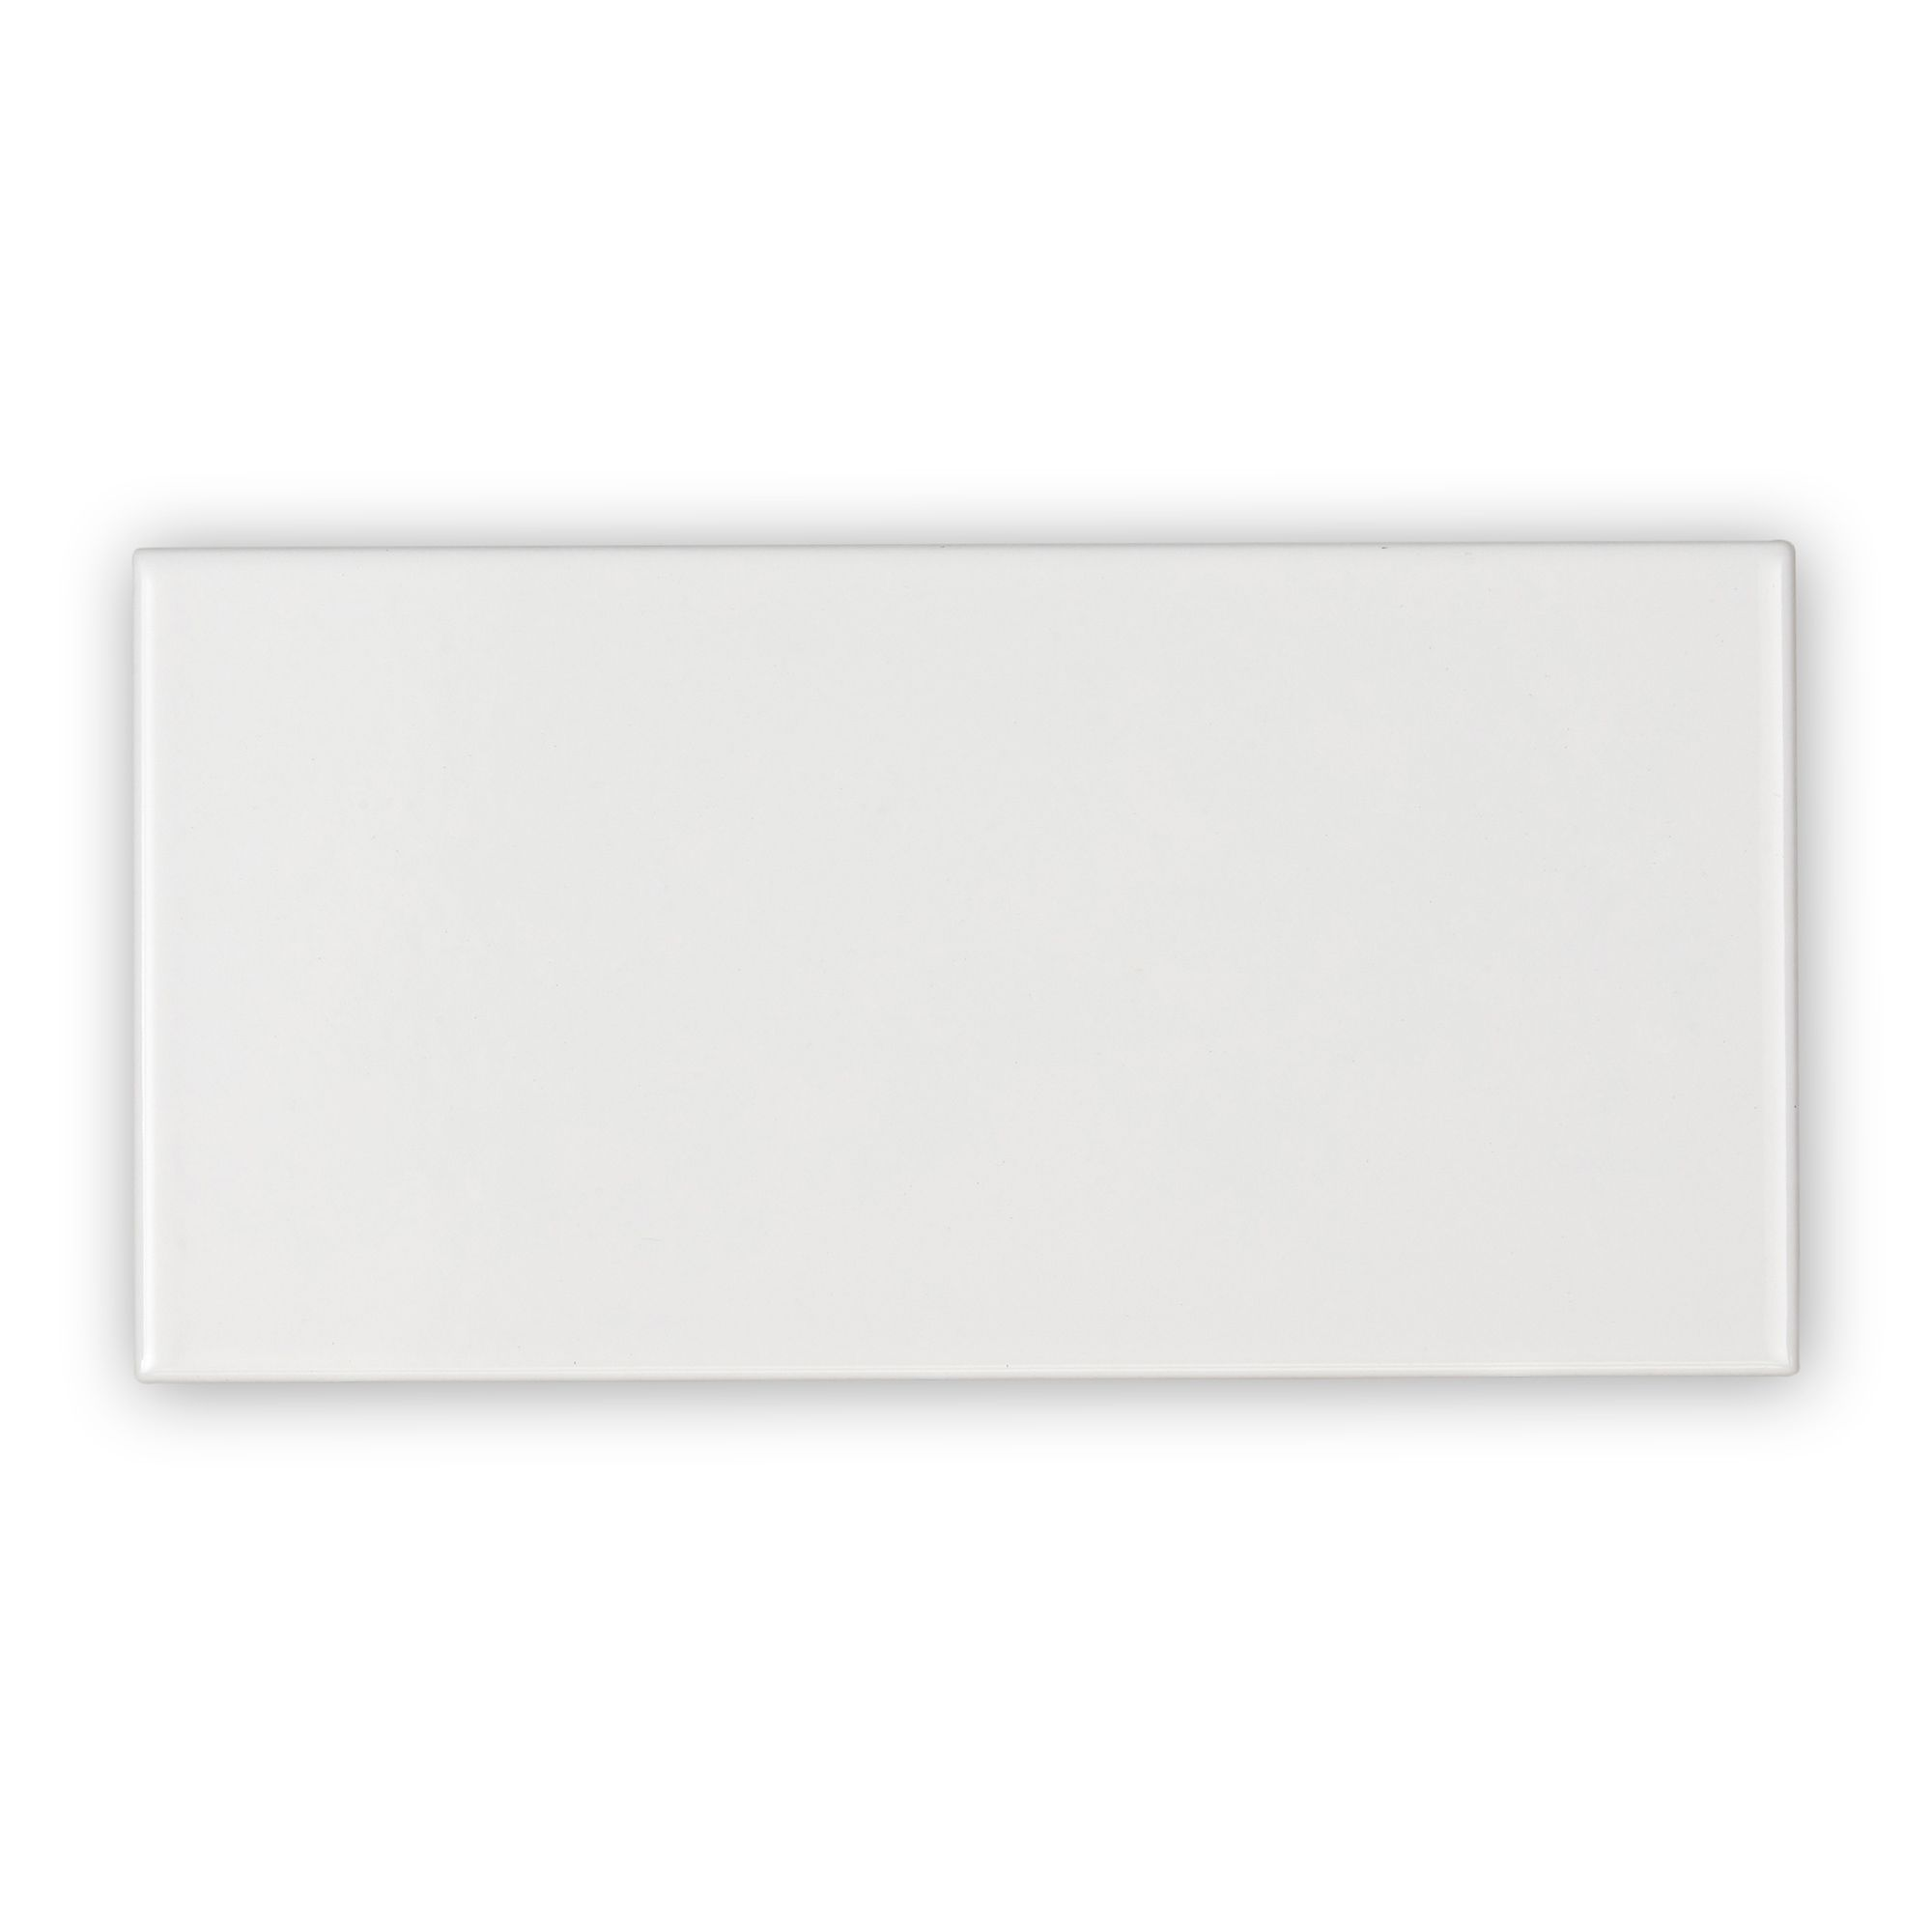 Architecture White Gloss 10x20